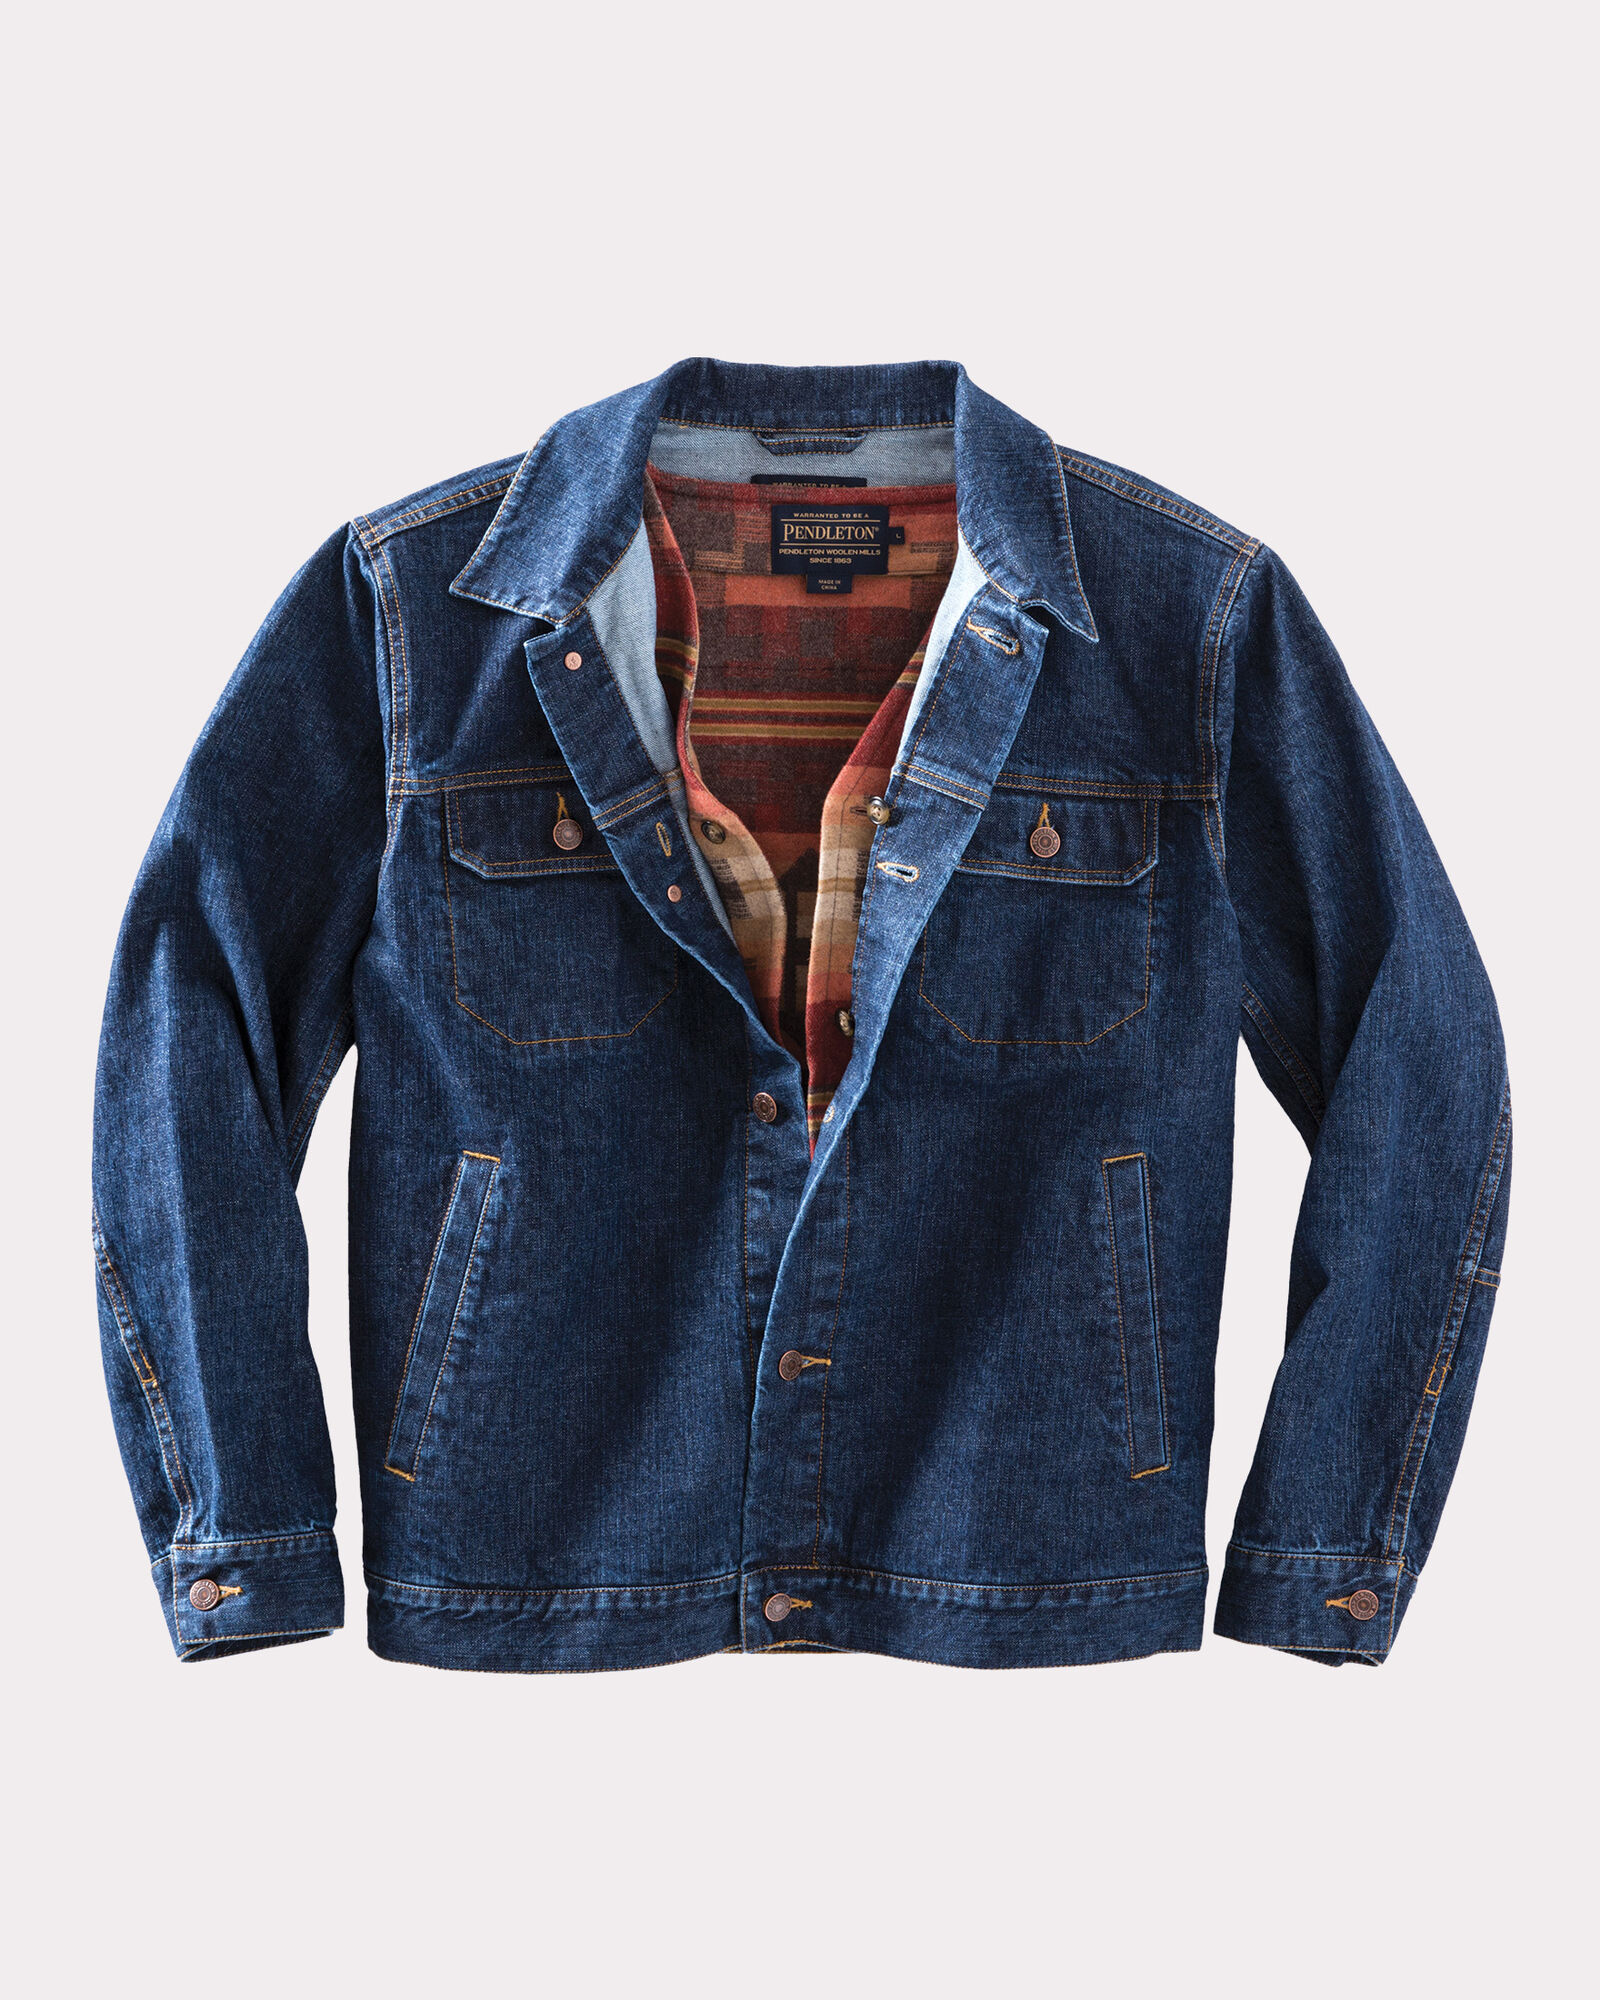 JEAN JACKET WITH REMOVABLE WOOL VEST | Pendleton